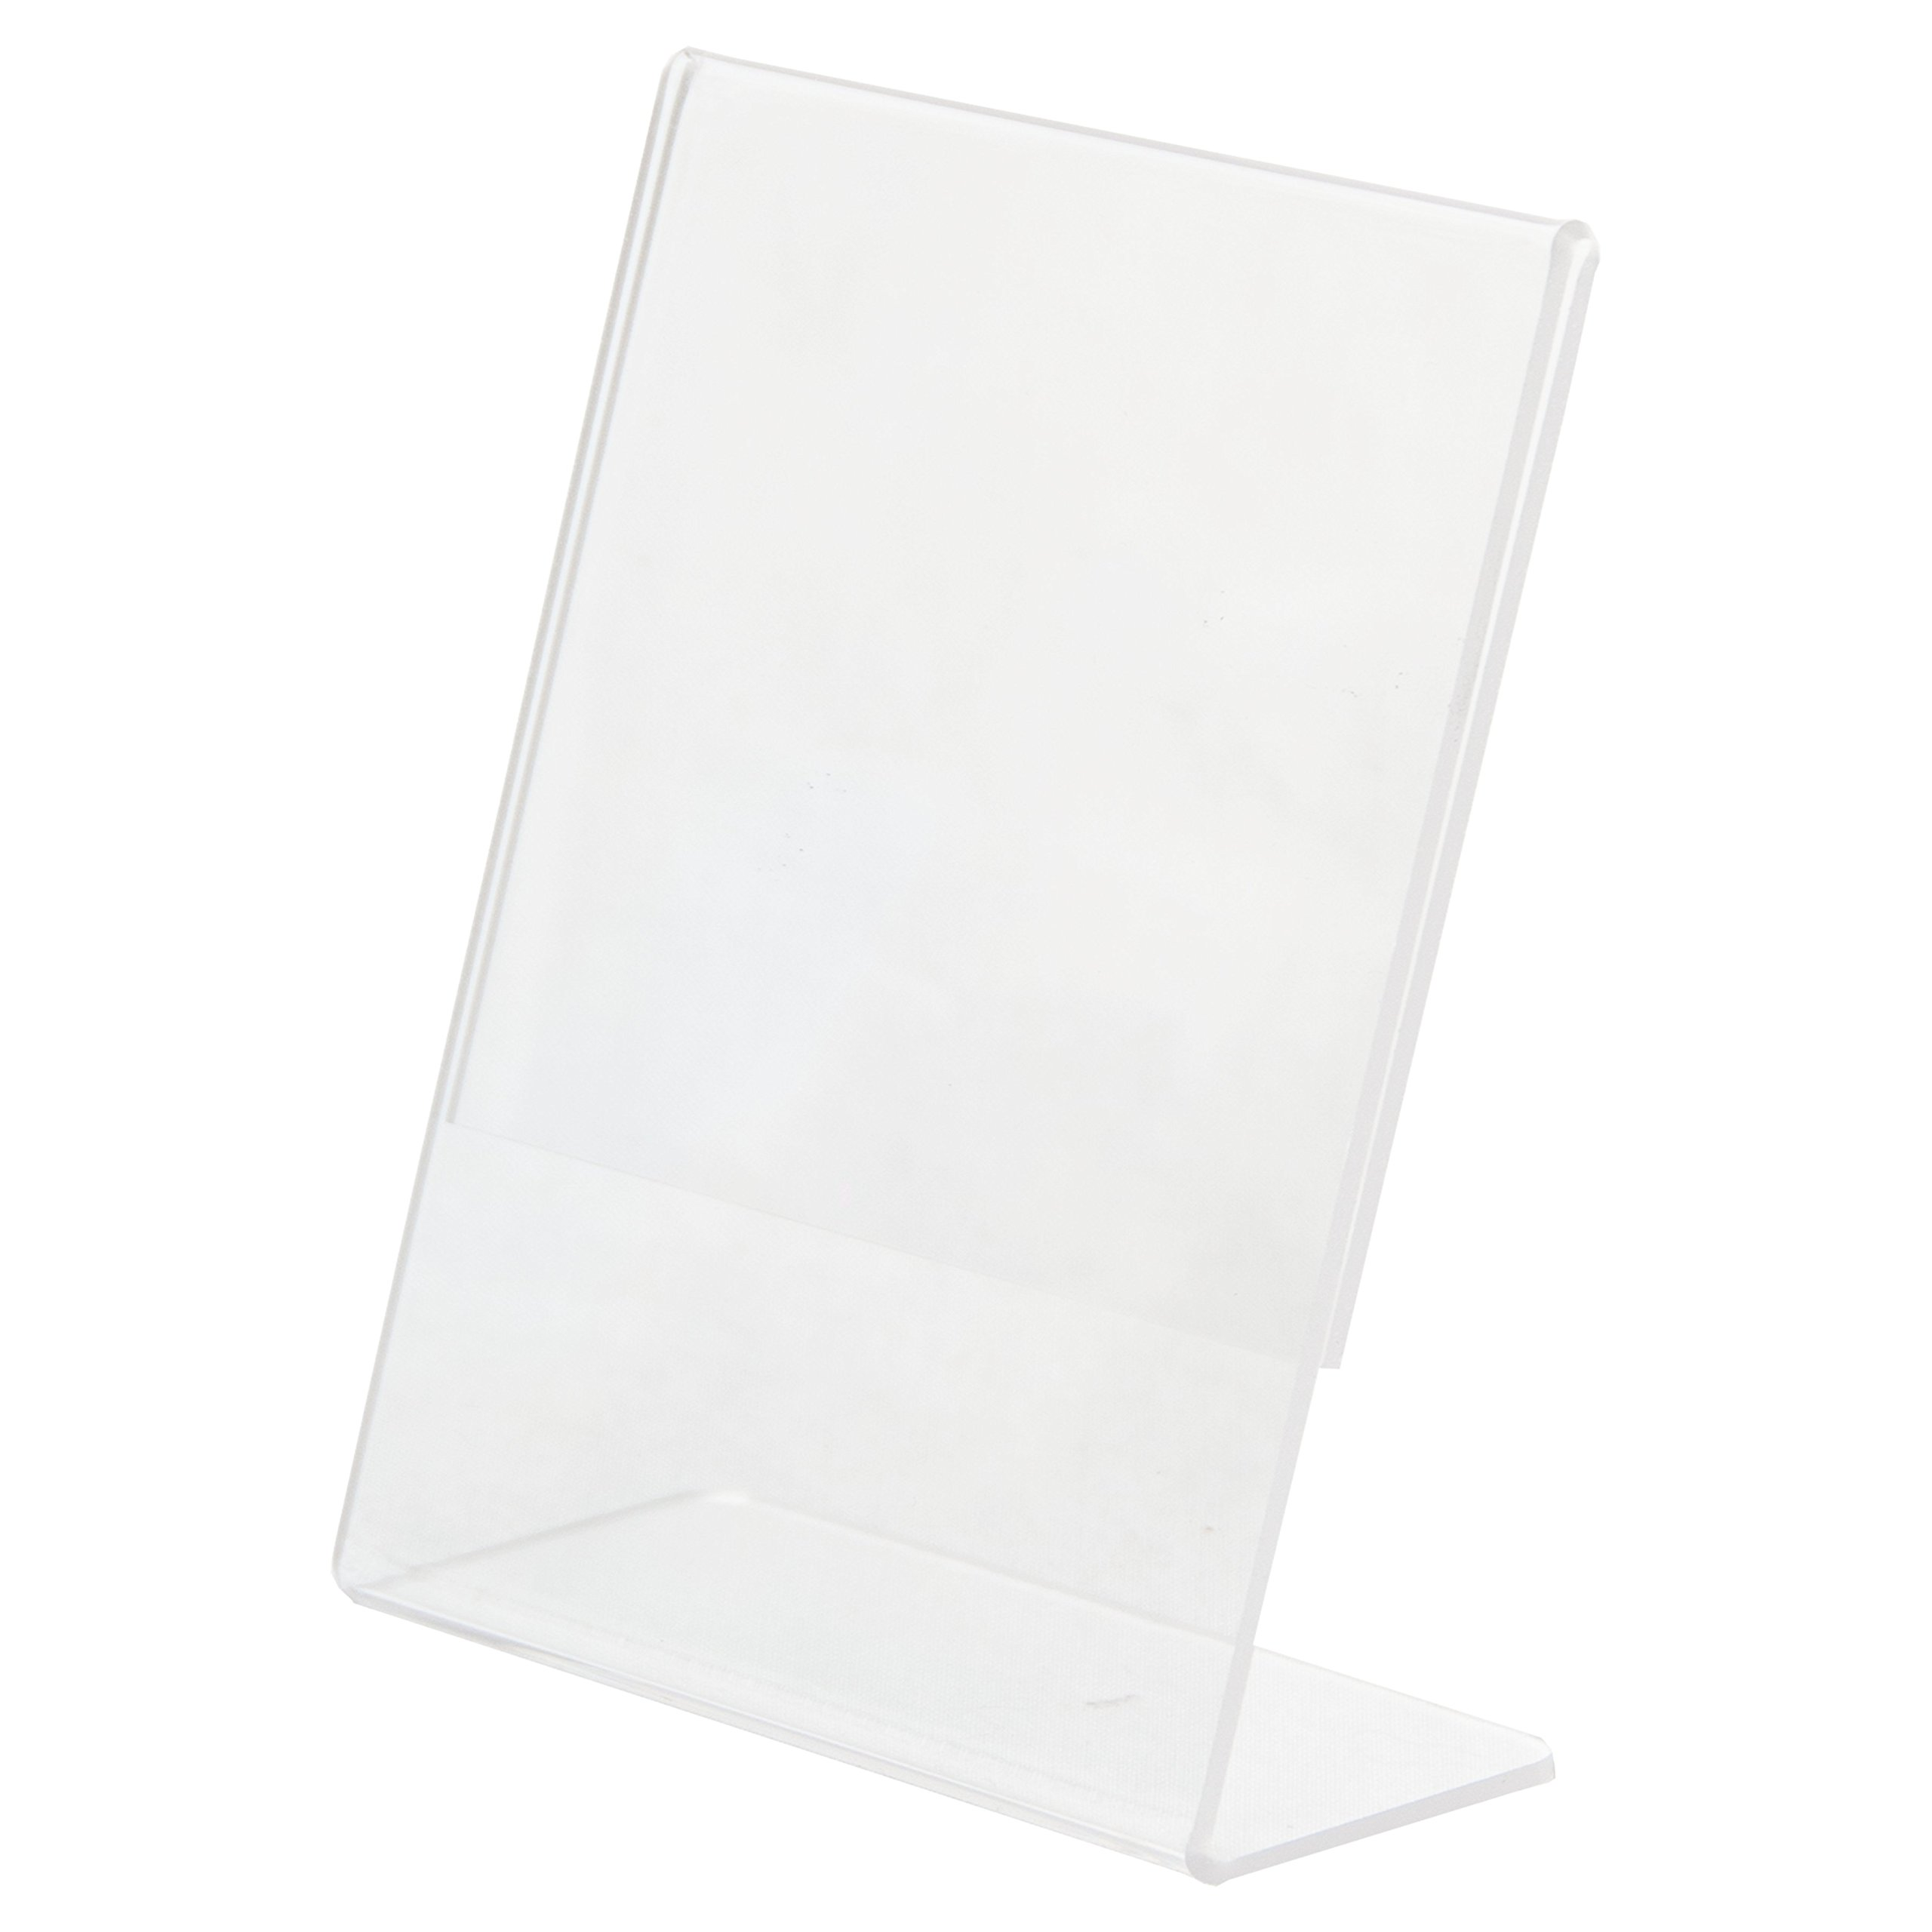 Clear-Ad - LHA-46 - Acrylic Slanted Sign Holder 4x6 - Plexiglass Table Menu Card Display Stand - Plastic Picture Frame Wholesale (Pack of 100) by Clear-Ad (Image #3)